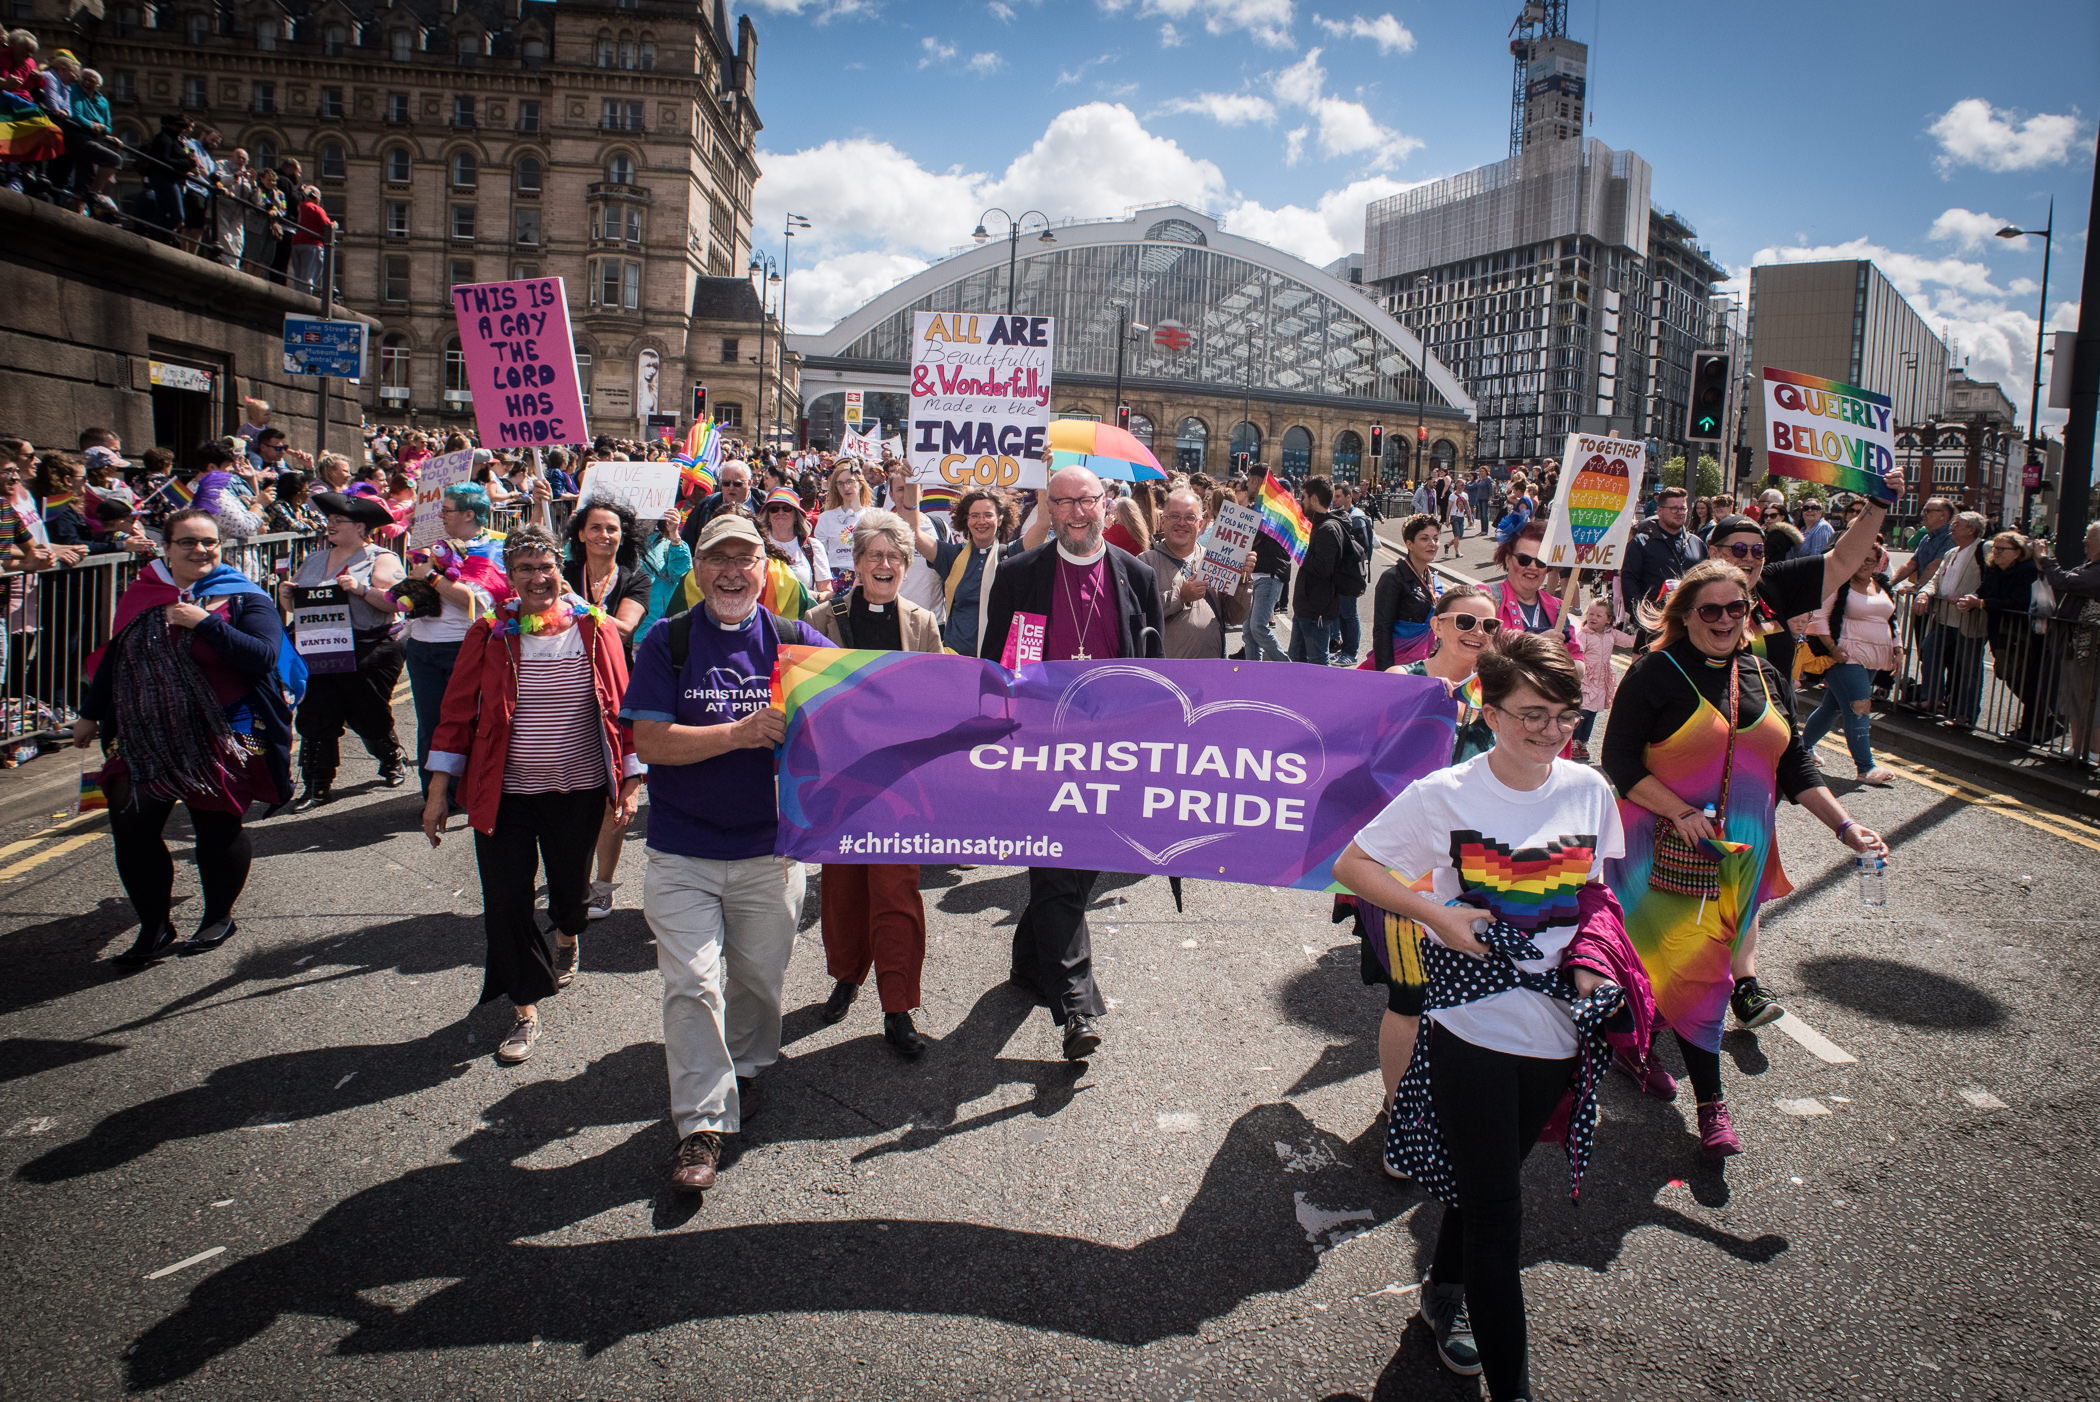 Christians at Pride marching in Liverpool July 2018 CREDIT: Mark Loudon